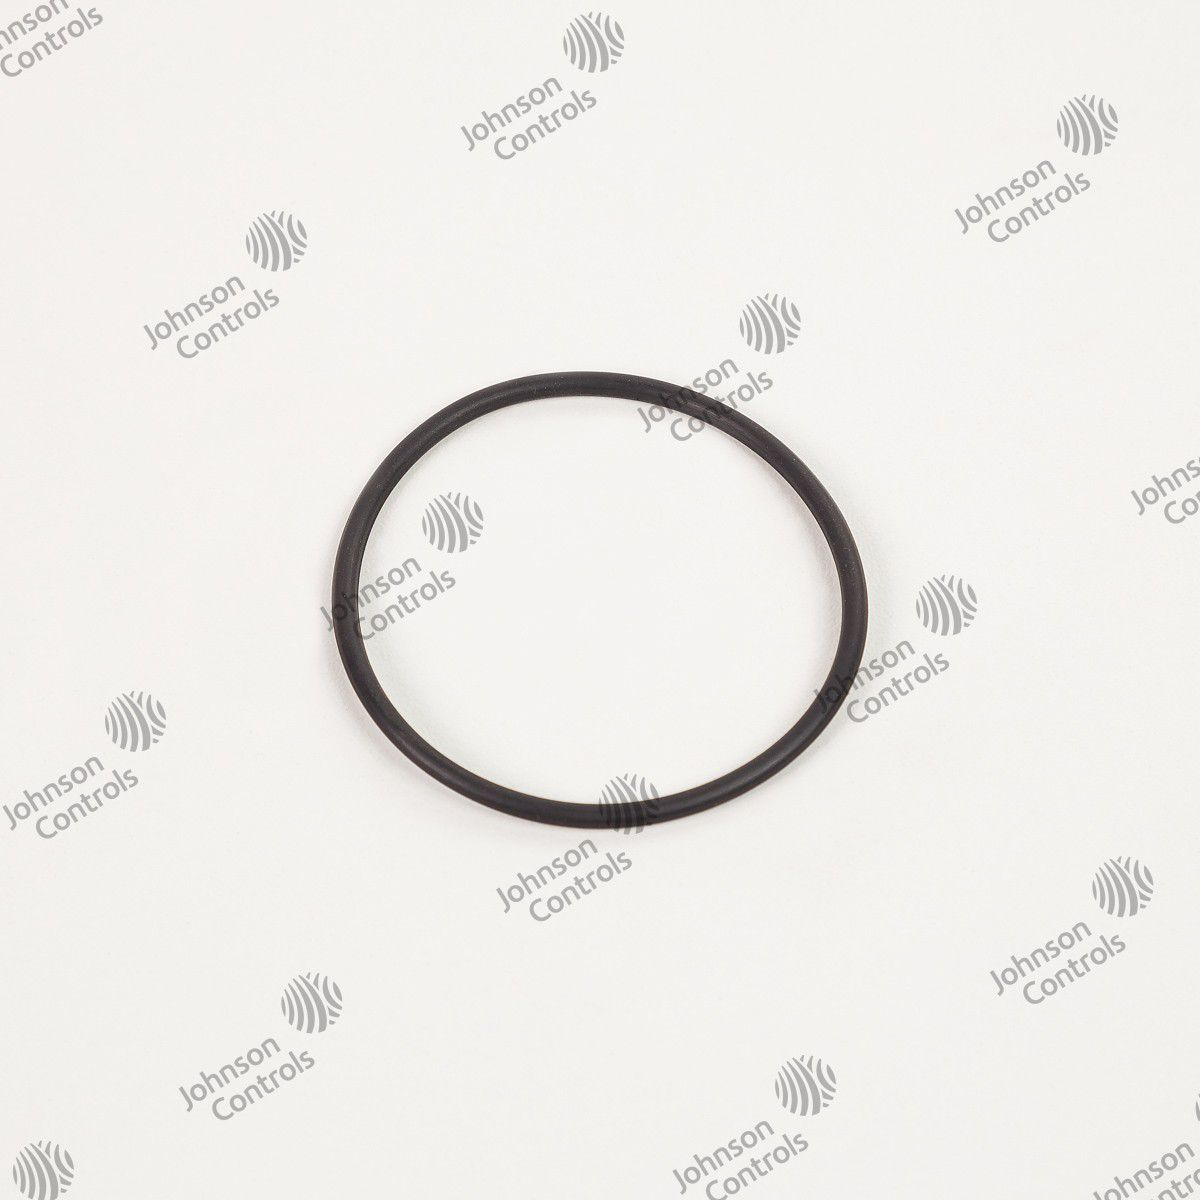 ANEL ORING 52,07/2,62 2347 - 1331+140